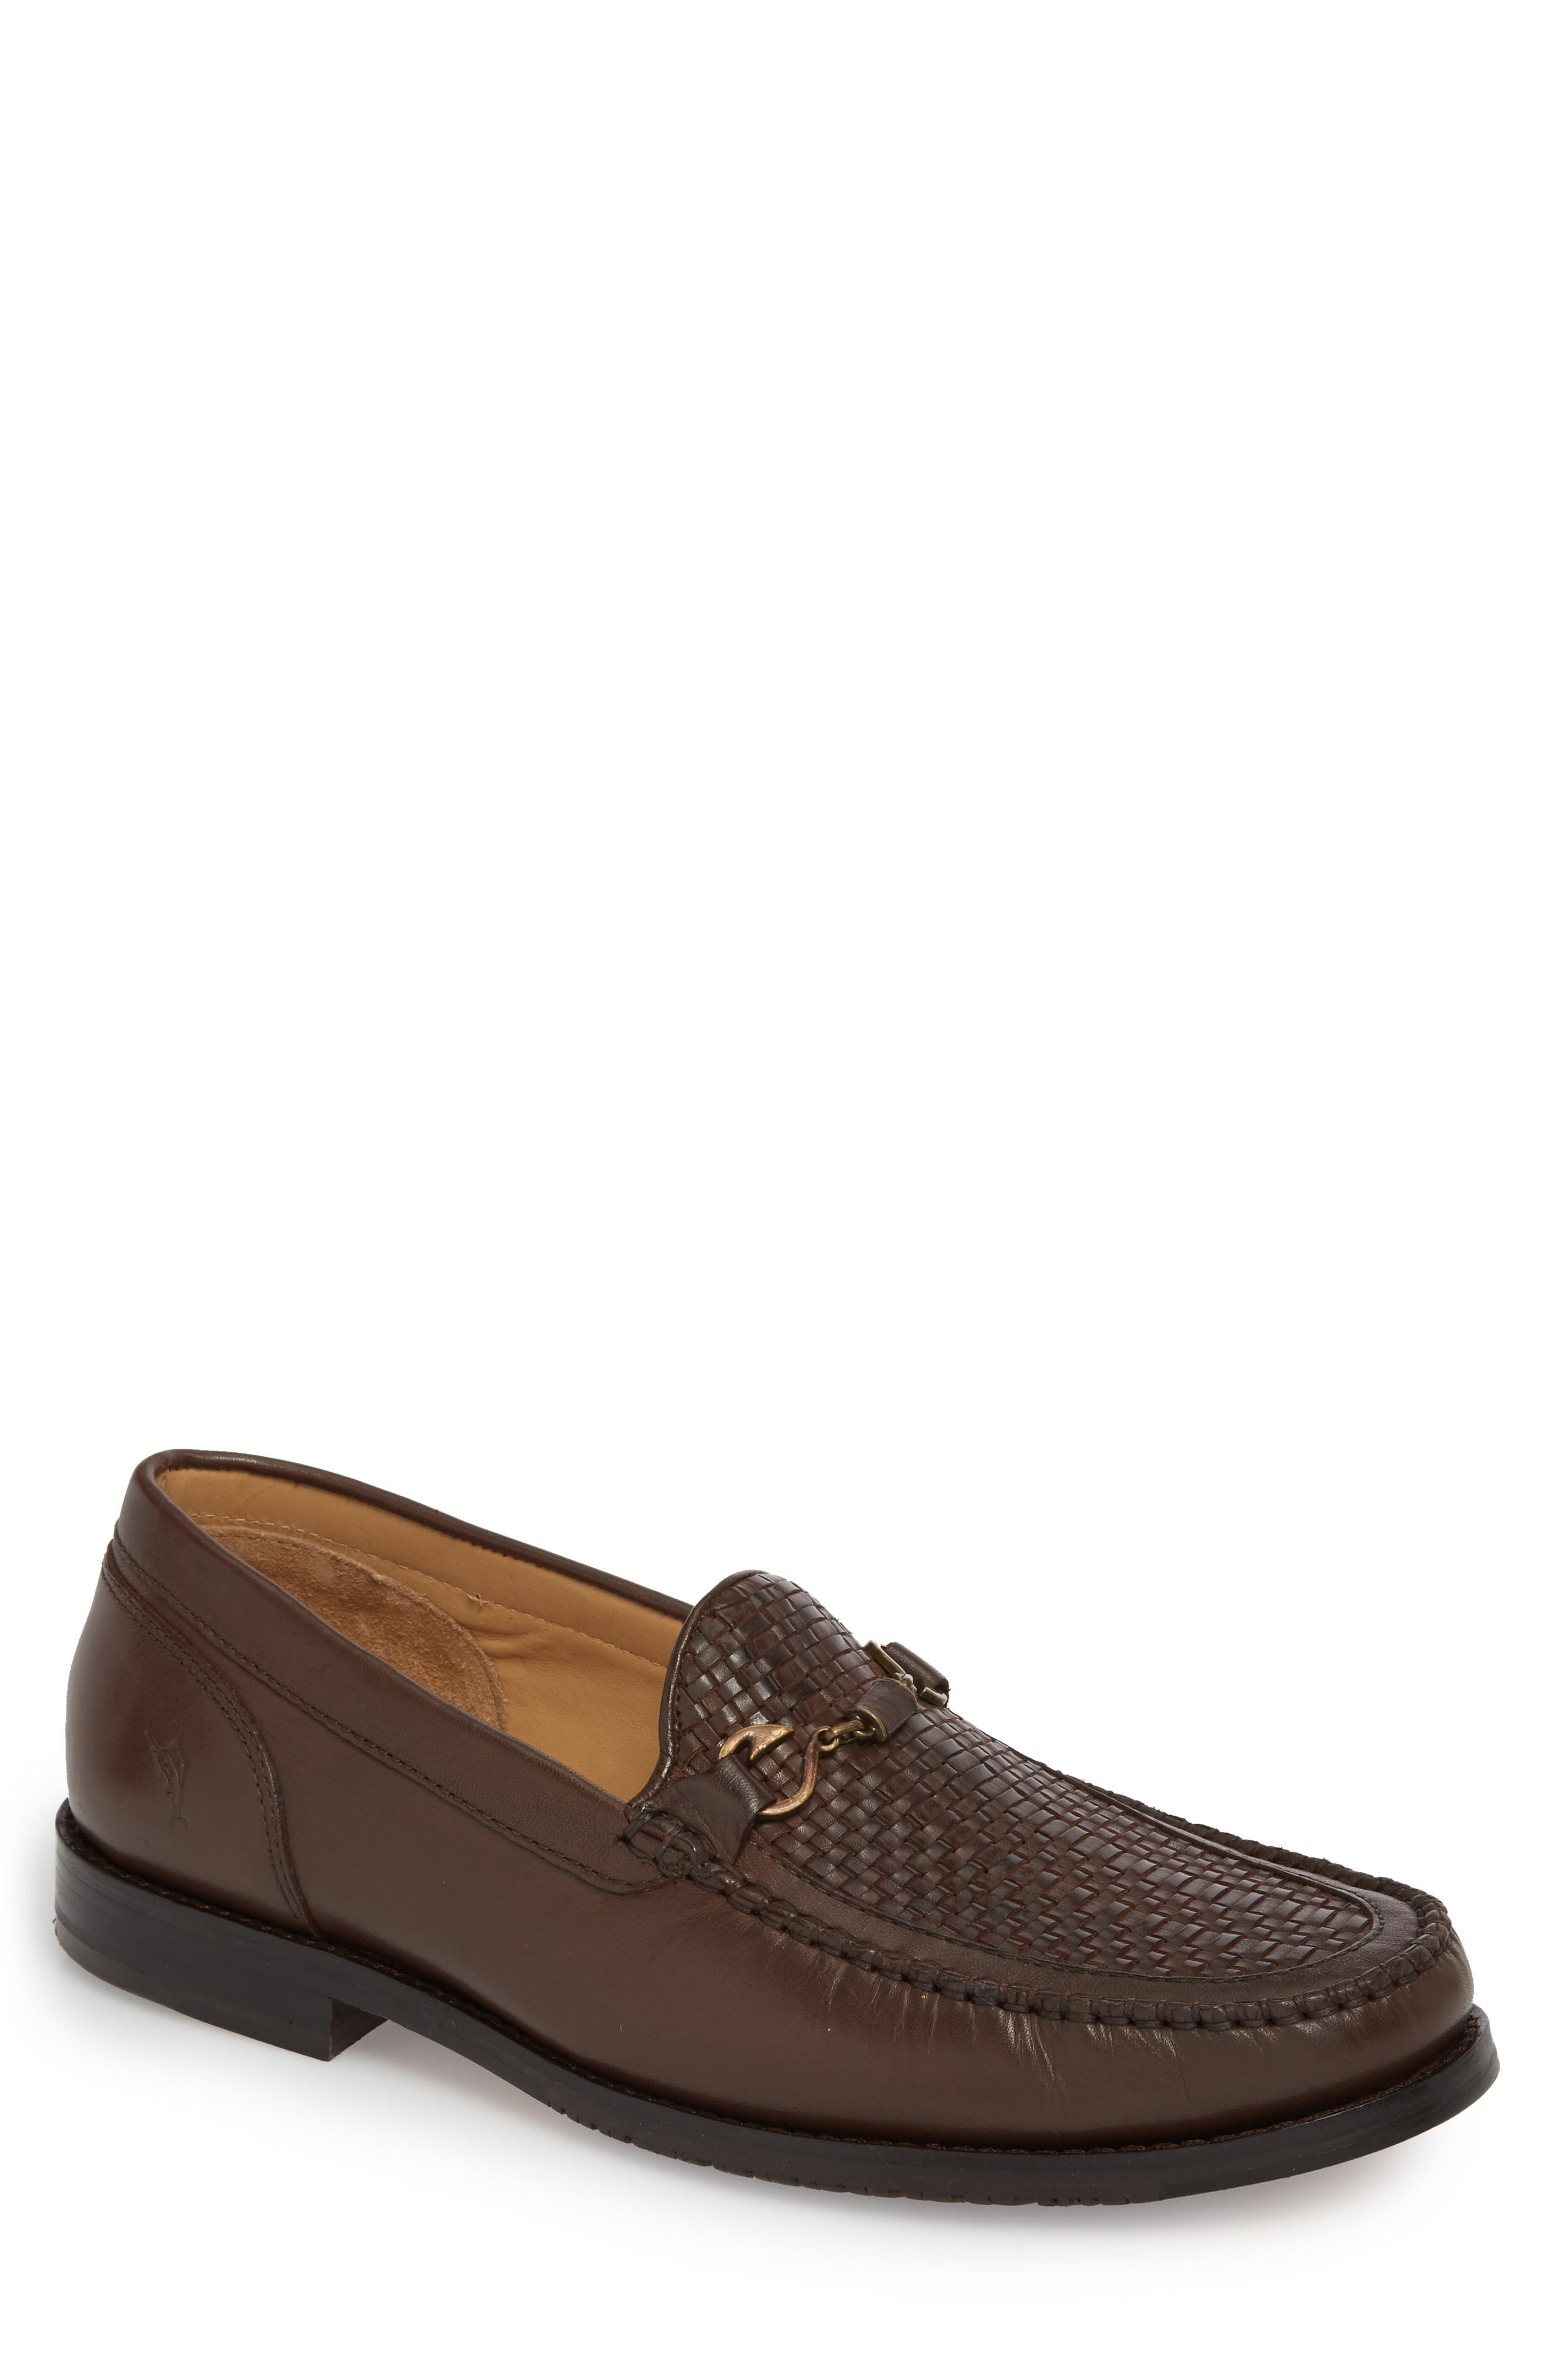 Maya Bay Bit Loafer,                             Main thumbnail 1, color,                             Dark Brown Woven Leather